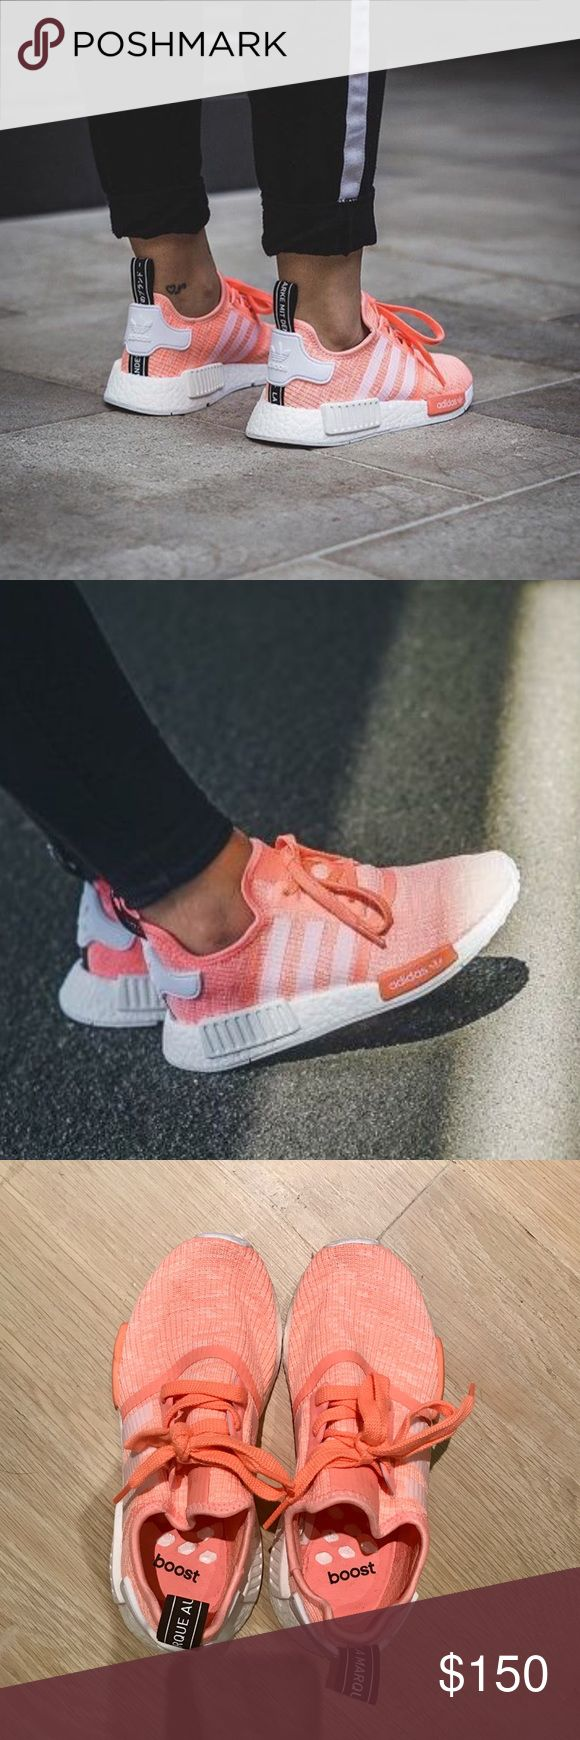 Adidas NMD R1 Runner in Sun Glow Pink (BY3034) 100% Authentic SUPER in-demand Adidas NMDs in Sun Glow shade. This colorway was a limited release in April 2017. Bought these from a legit reseller for $220 & went to the Adidas store to get them checked for authenticity, so guaranteed 100% authentic. Worn only twice and still in amazing condition, but I unfortunately don't have the box anymore. Price firm but am willing to go lower on ️️ or ♈️enmo. **THESE RUN LARGE** would fit a woman's size 6…